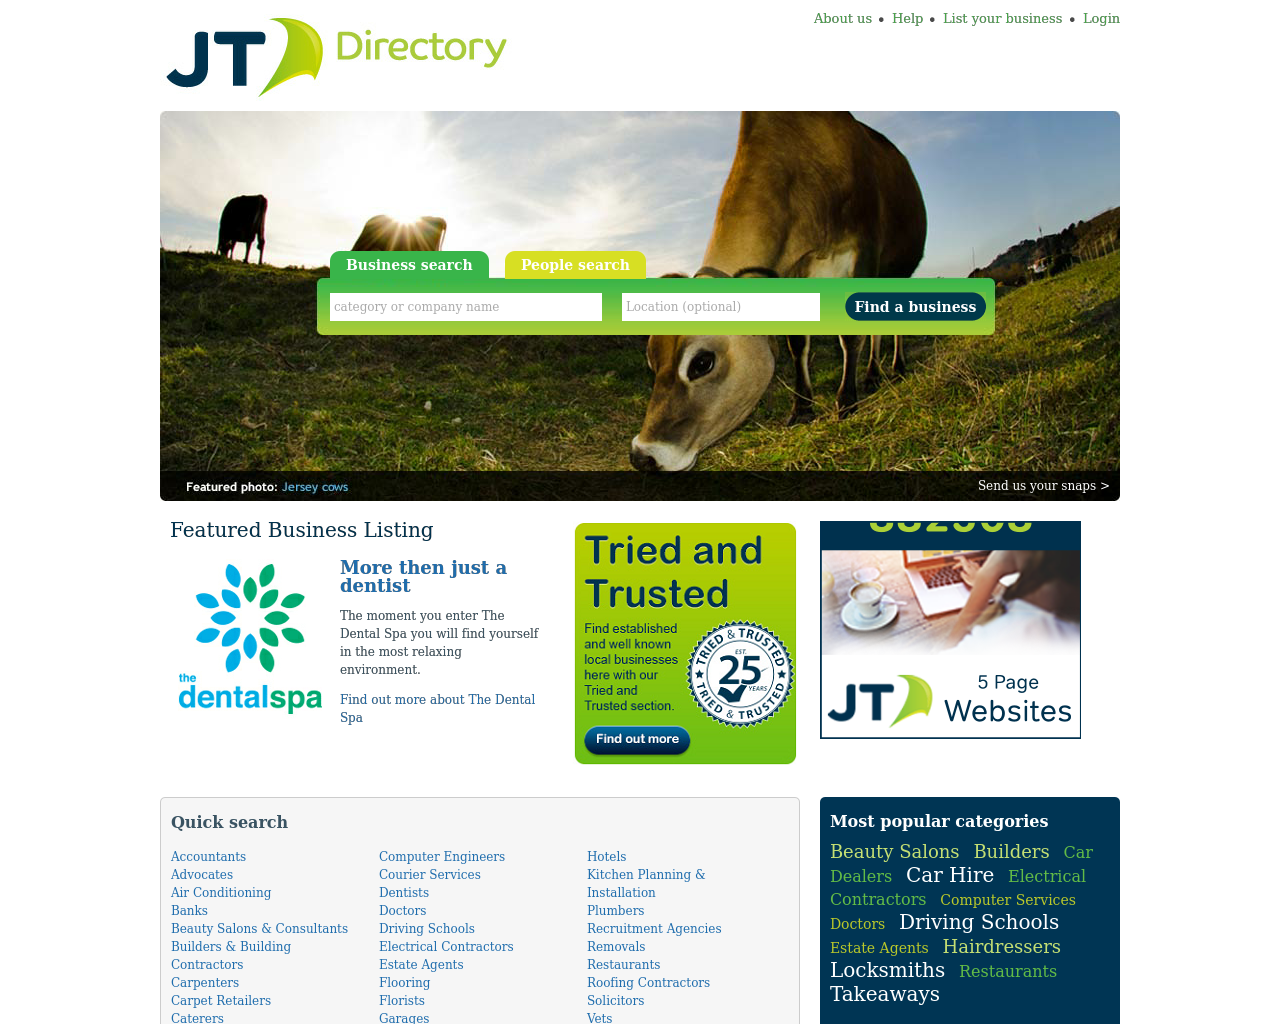 JT-Directory-Advertising-Reviews-Pricing